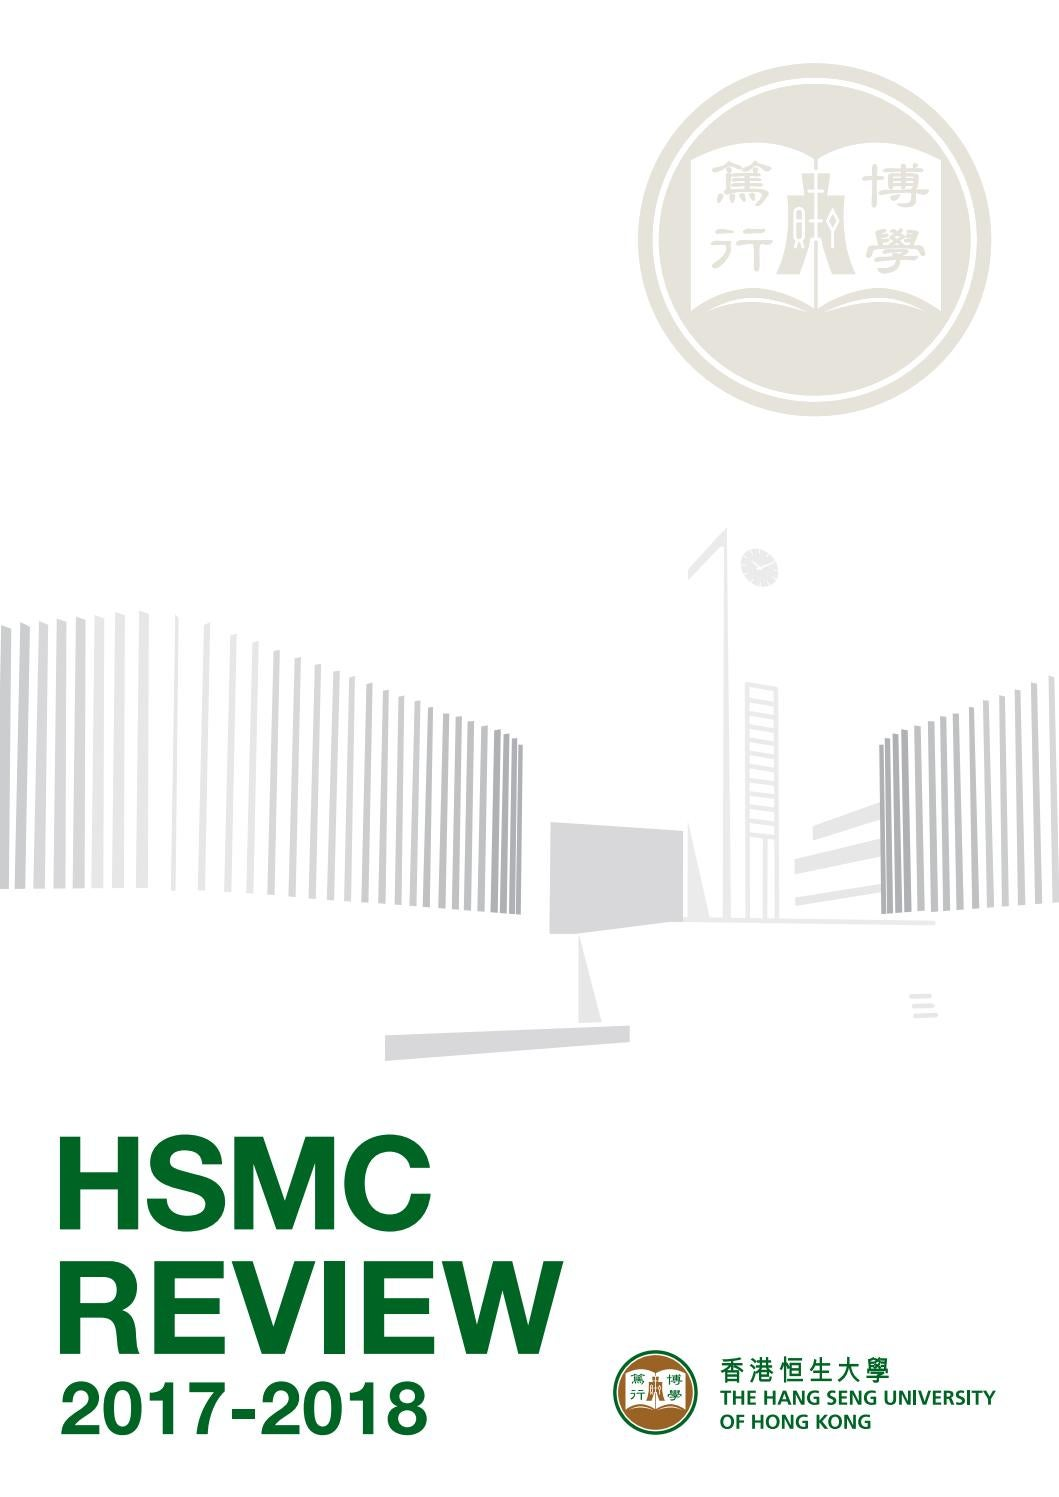 HSMC Review-2017-2018 by hsuhk_cpao - issuu